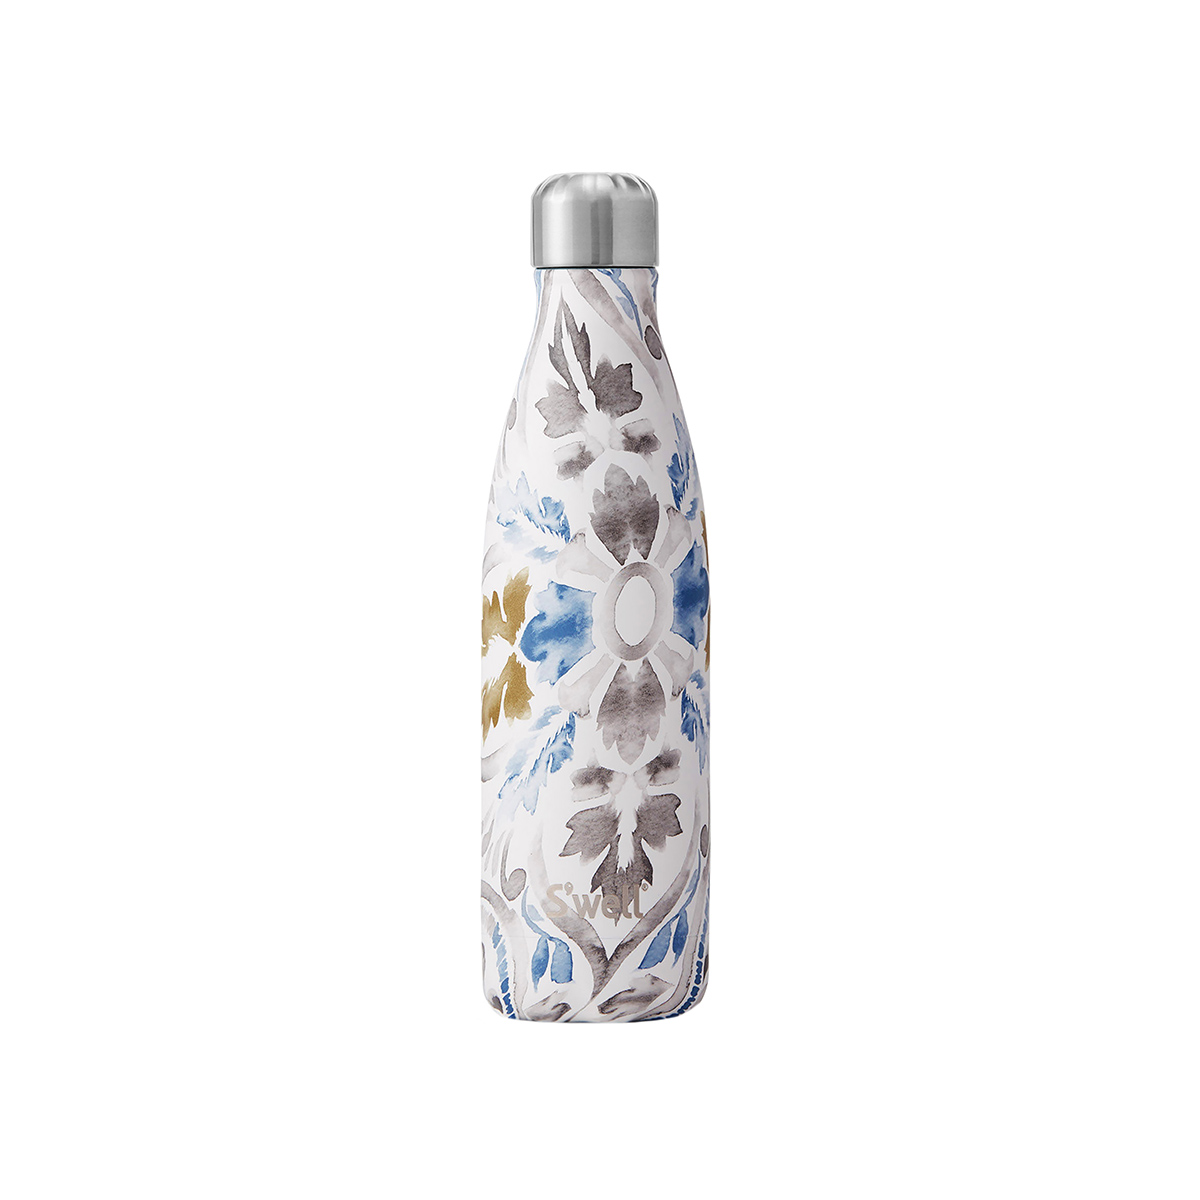 S'Well insulated water bottle (Lyon)